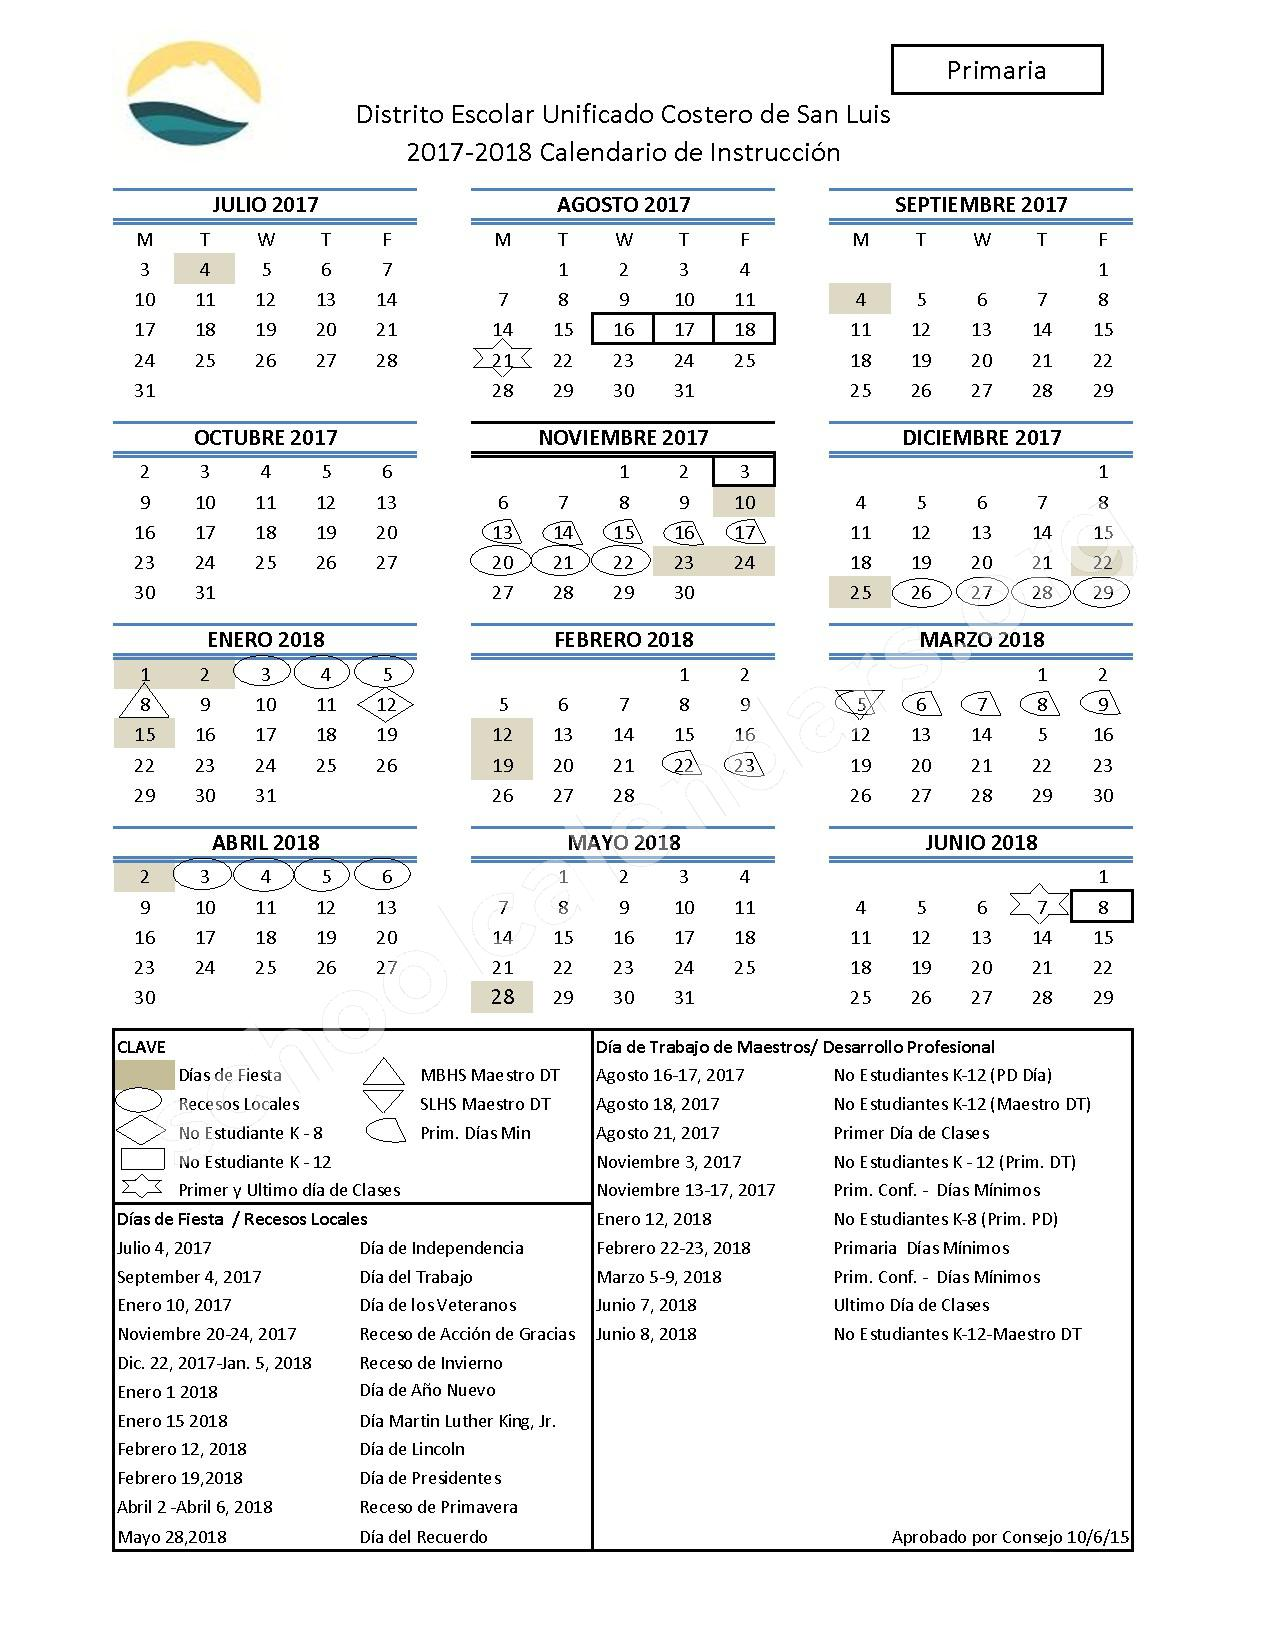 2017 - 2018 Calendario Escolar (Primaria) – San Luis Coastal Unified School District – page 1